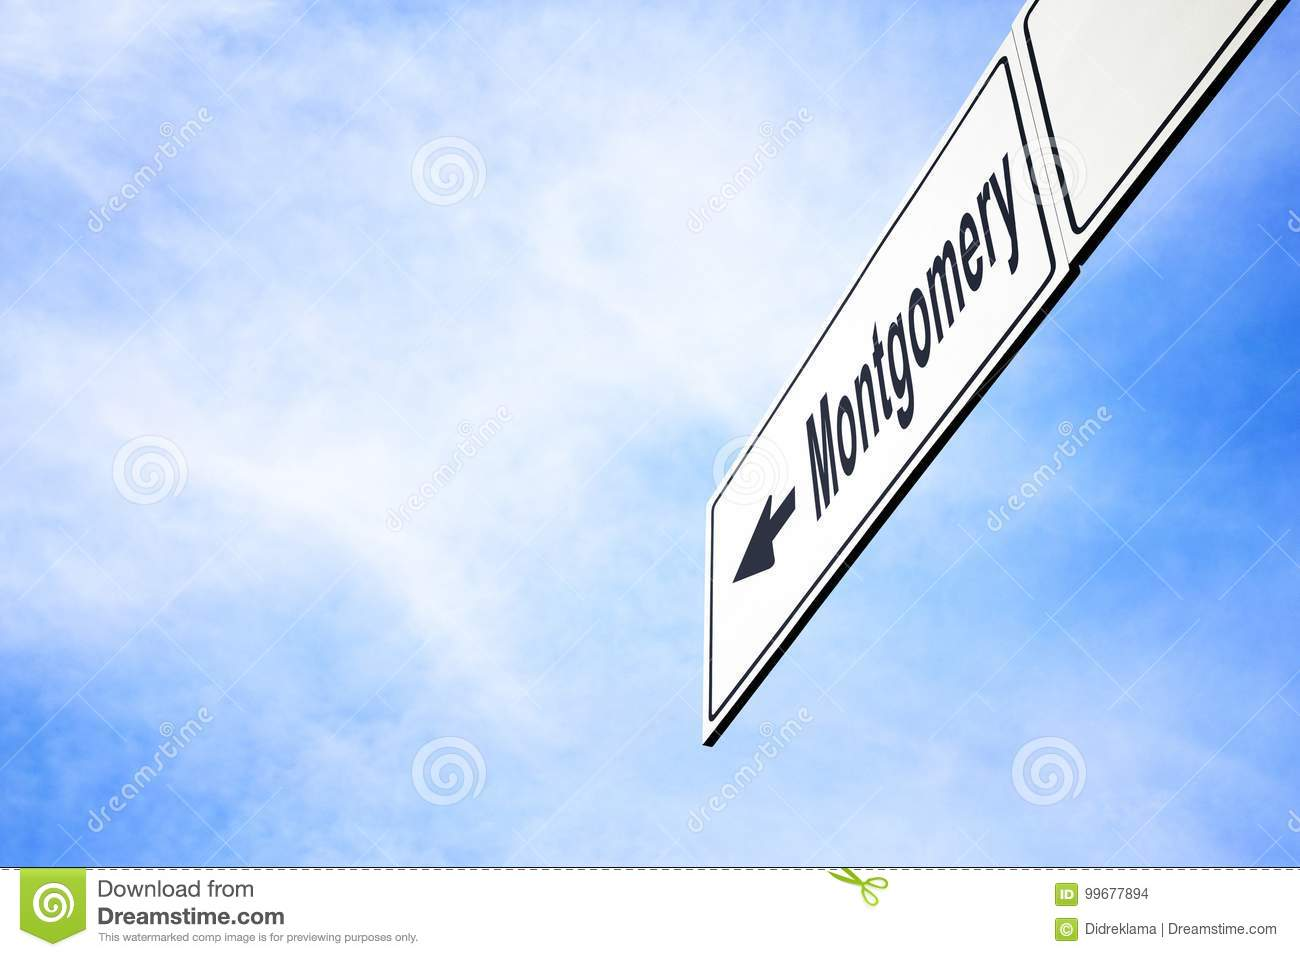 White Signboard With An Arrow Pointing Left Towards Montgomery Alabama Usa Against A Hazy Blue Sky In A Concept Of Travel Navigation And Direction